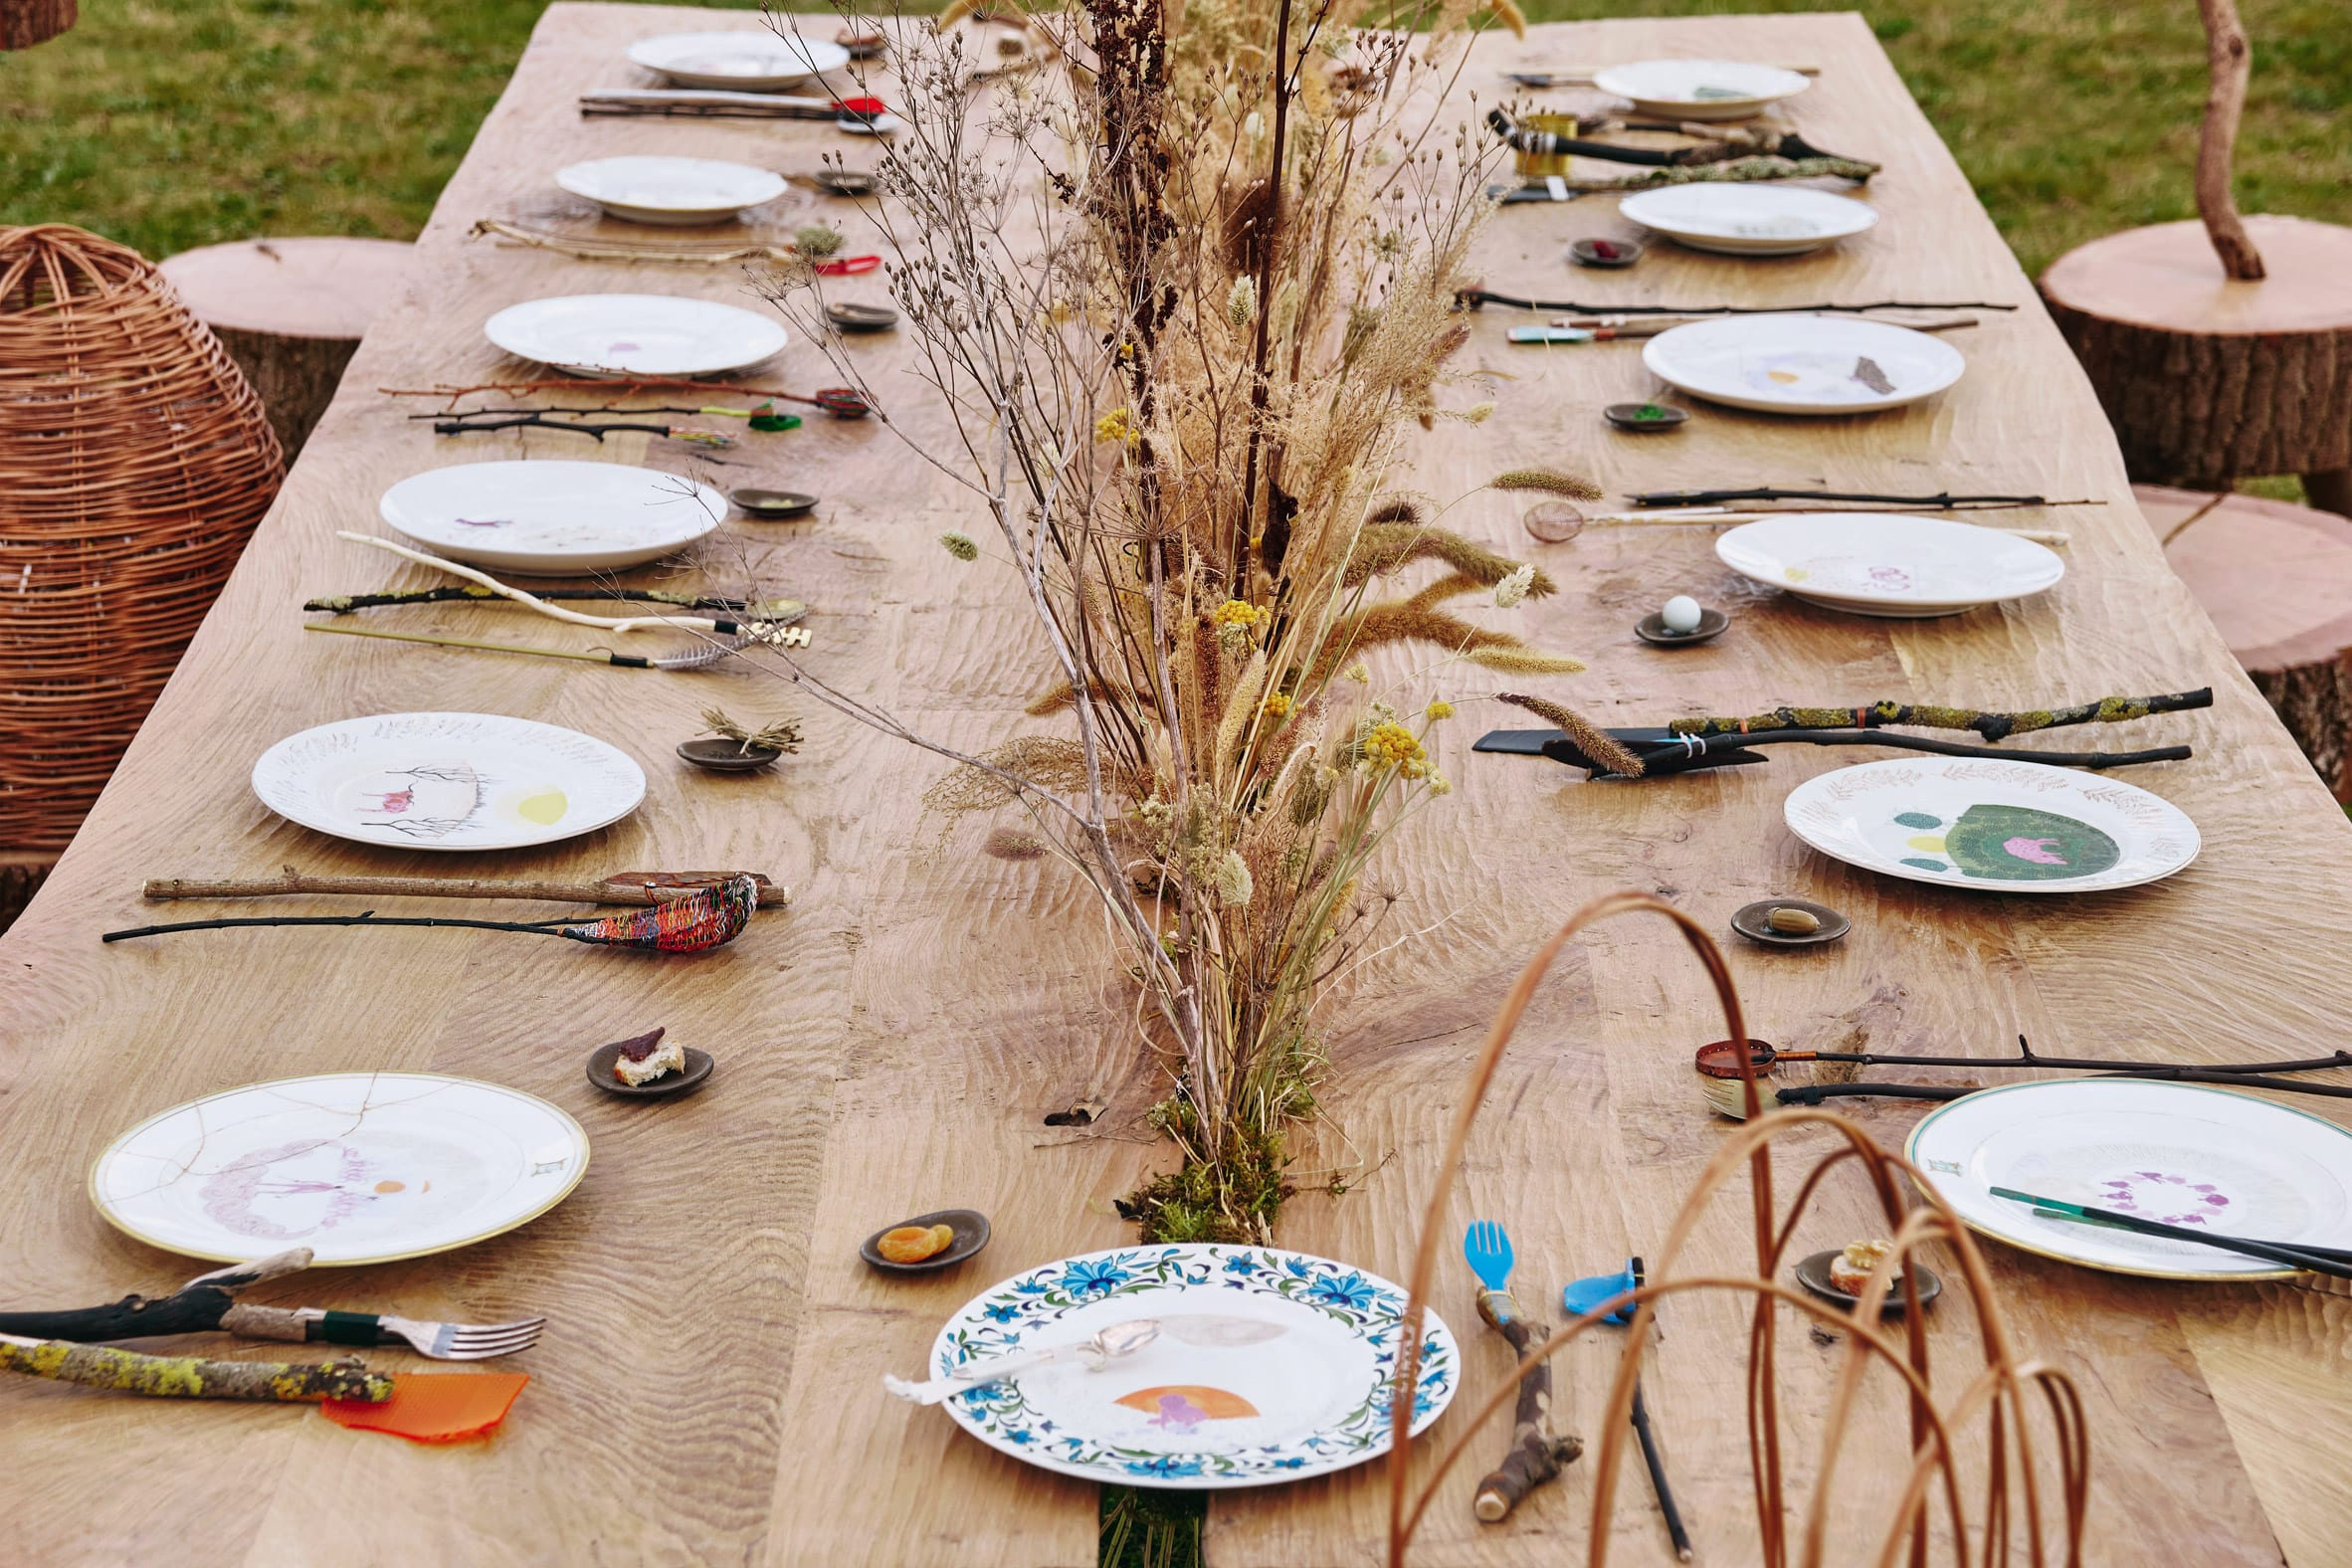 Multi-species table setting with ceramic plates in Venice Architecture Biennale installation by Superflux